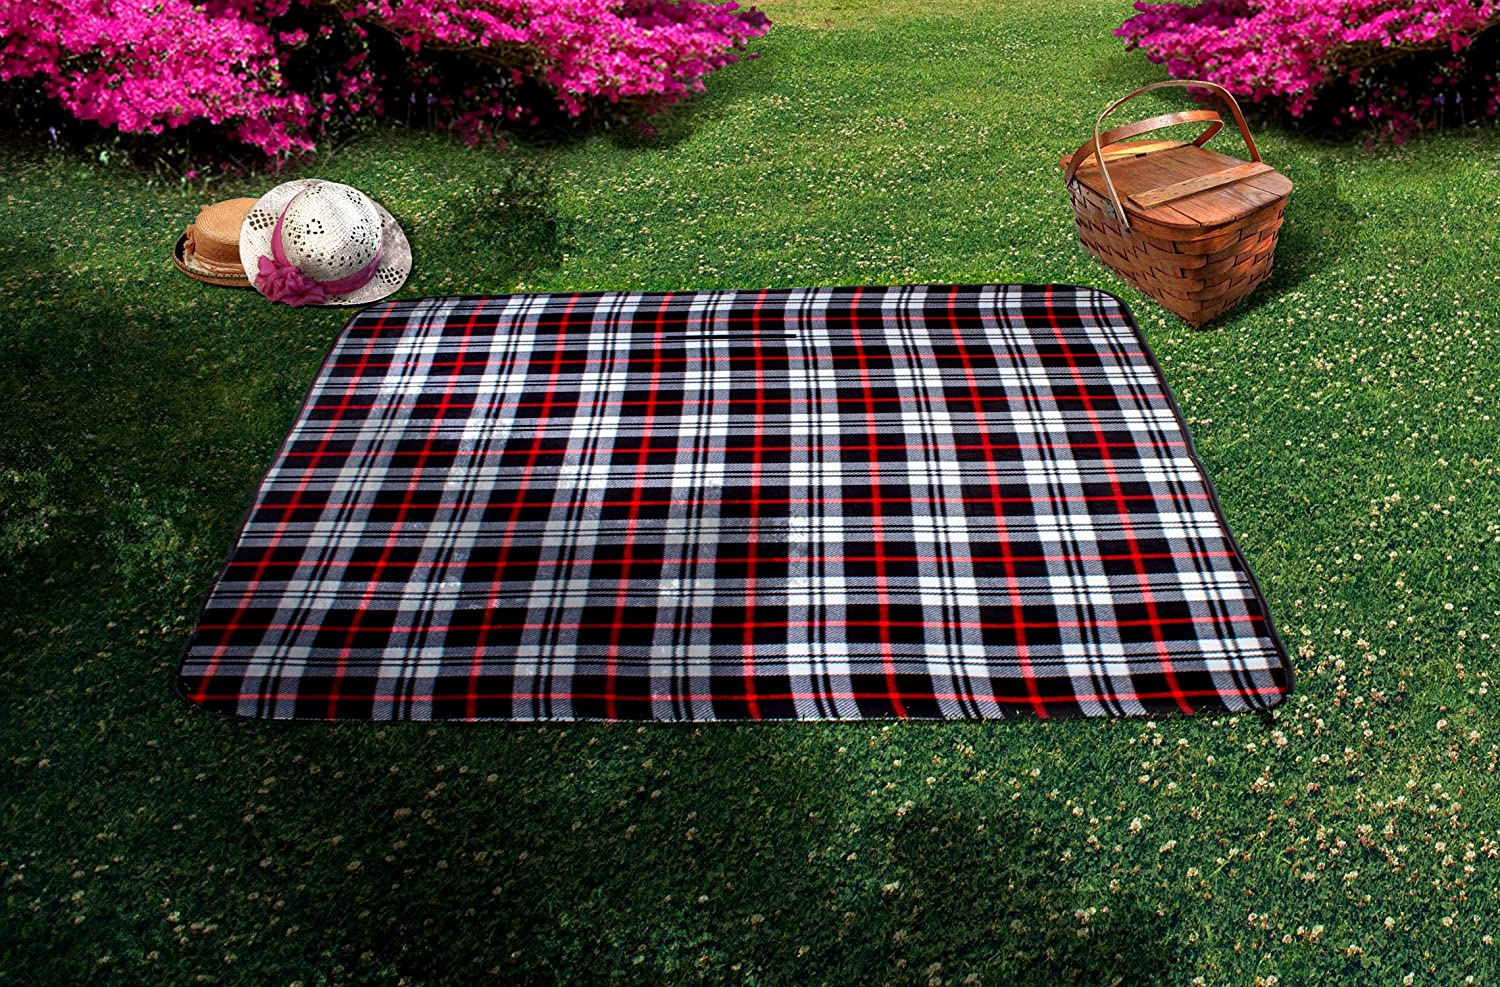 mperial Home All Purpose Picnic Blanket